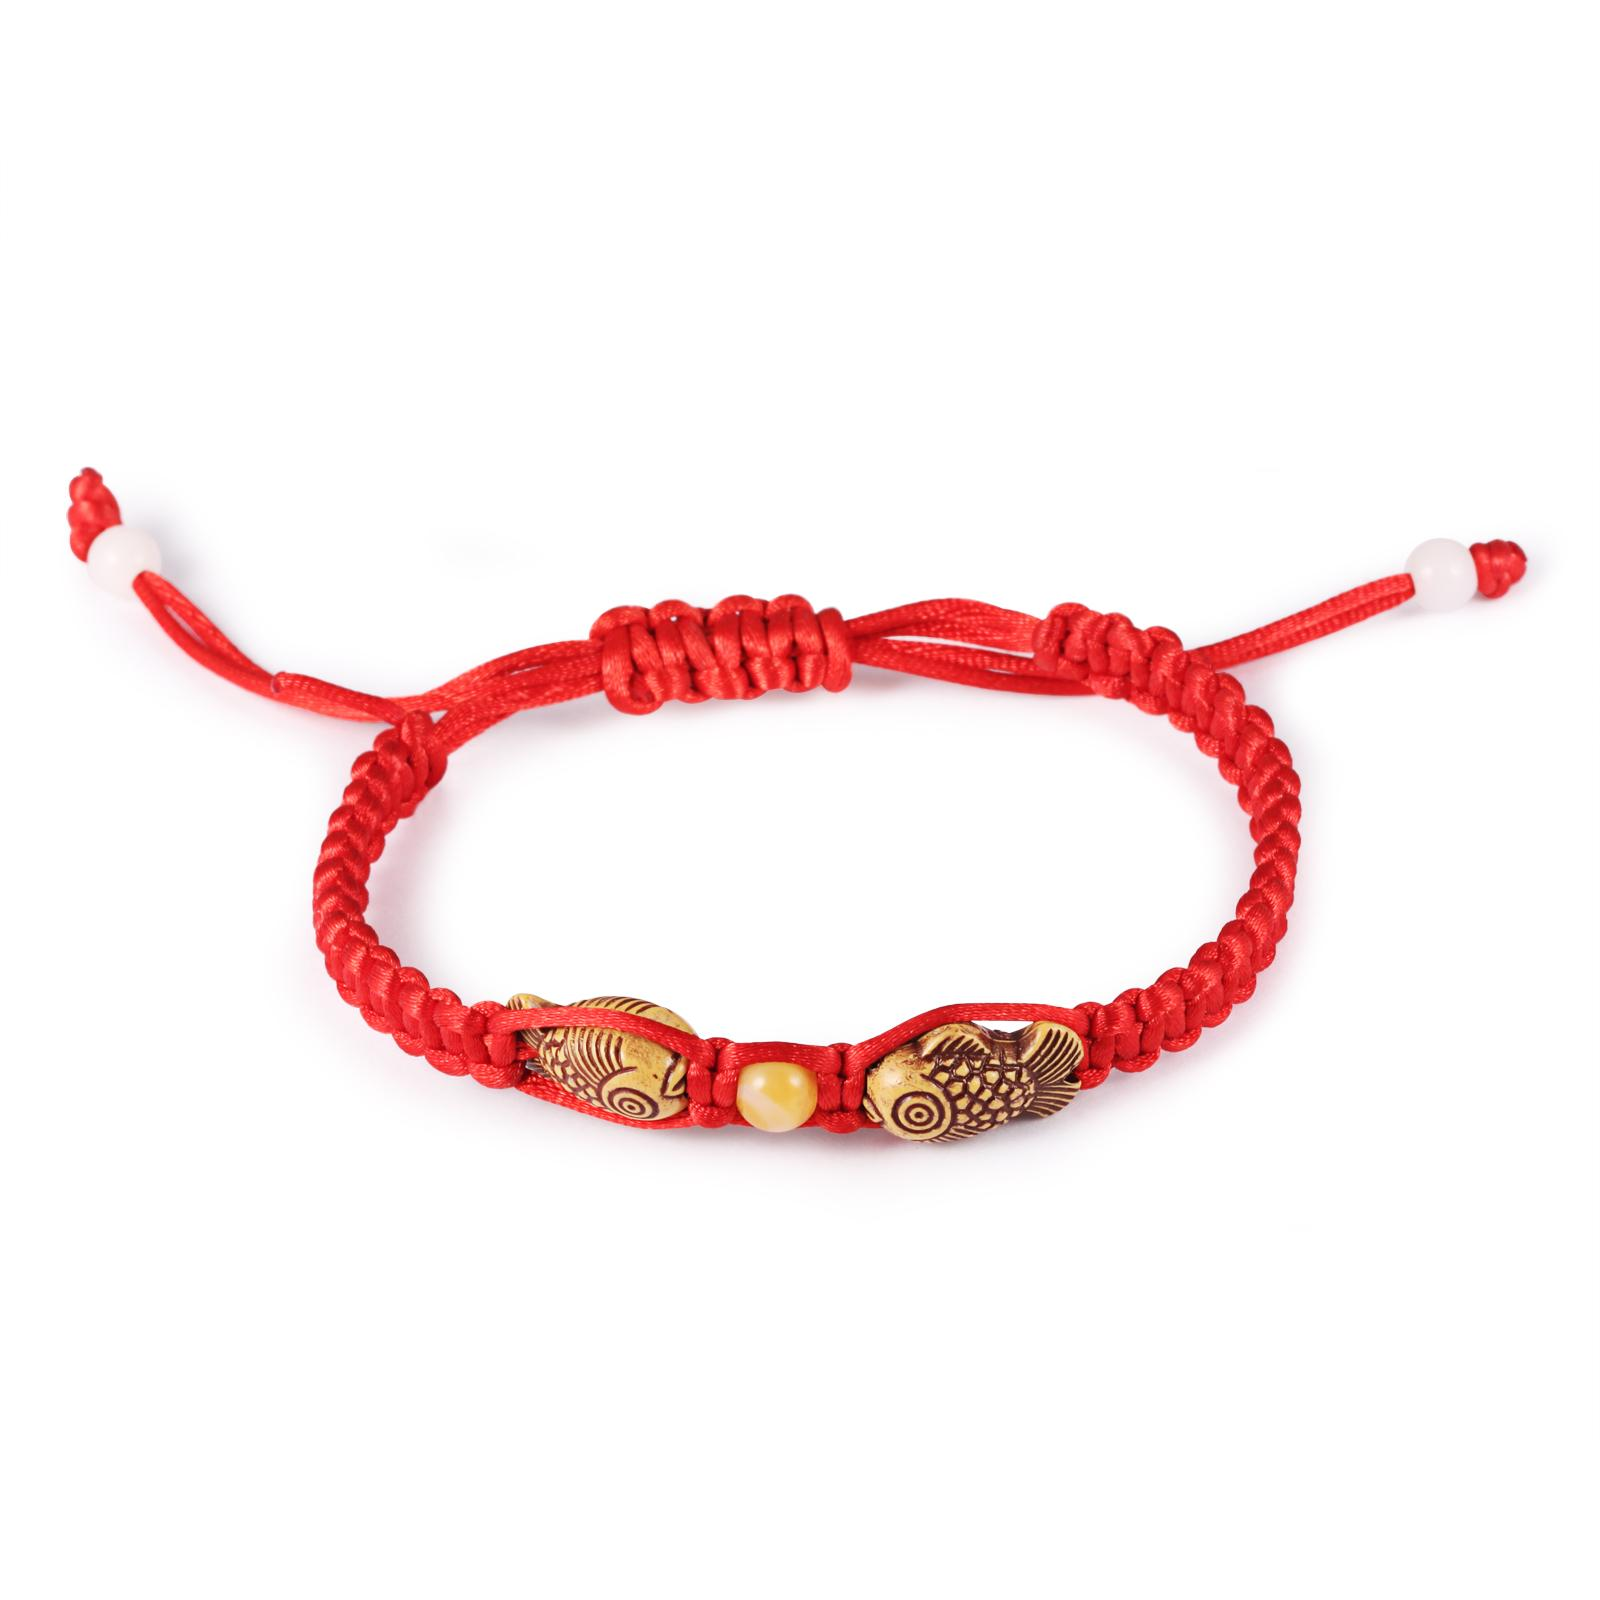 bracelet com shui feng window fengshuisale gesar bracelets sticker free ip king string walmart anklet red